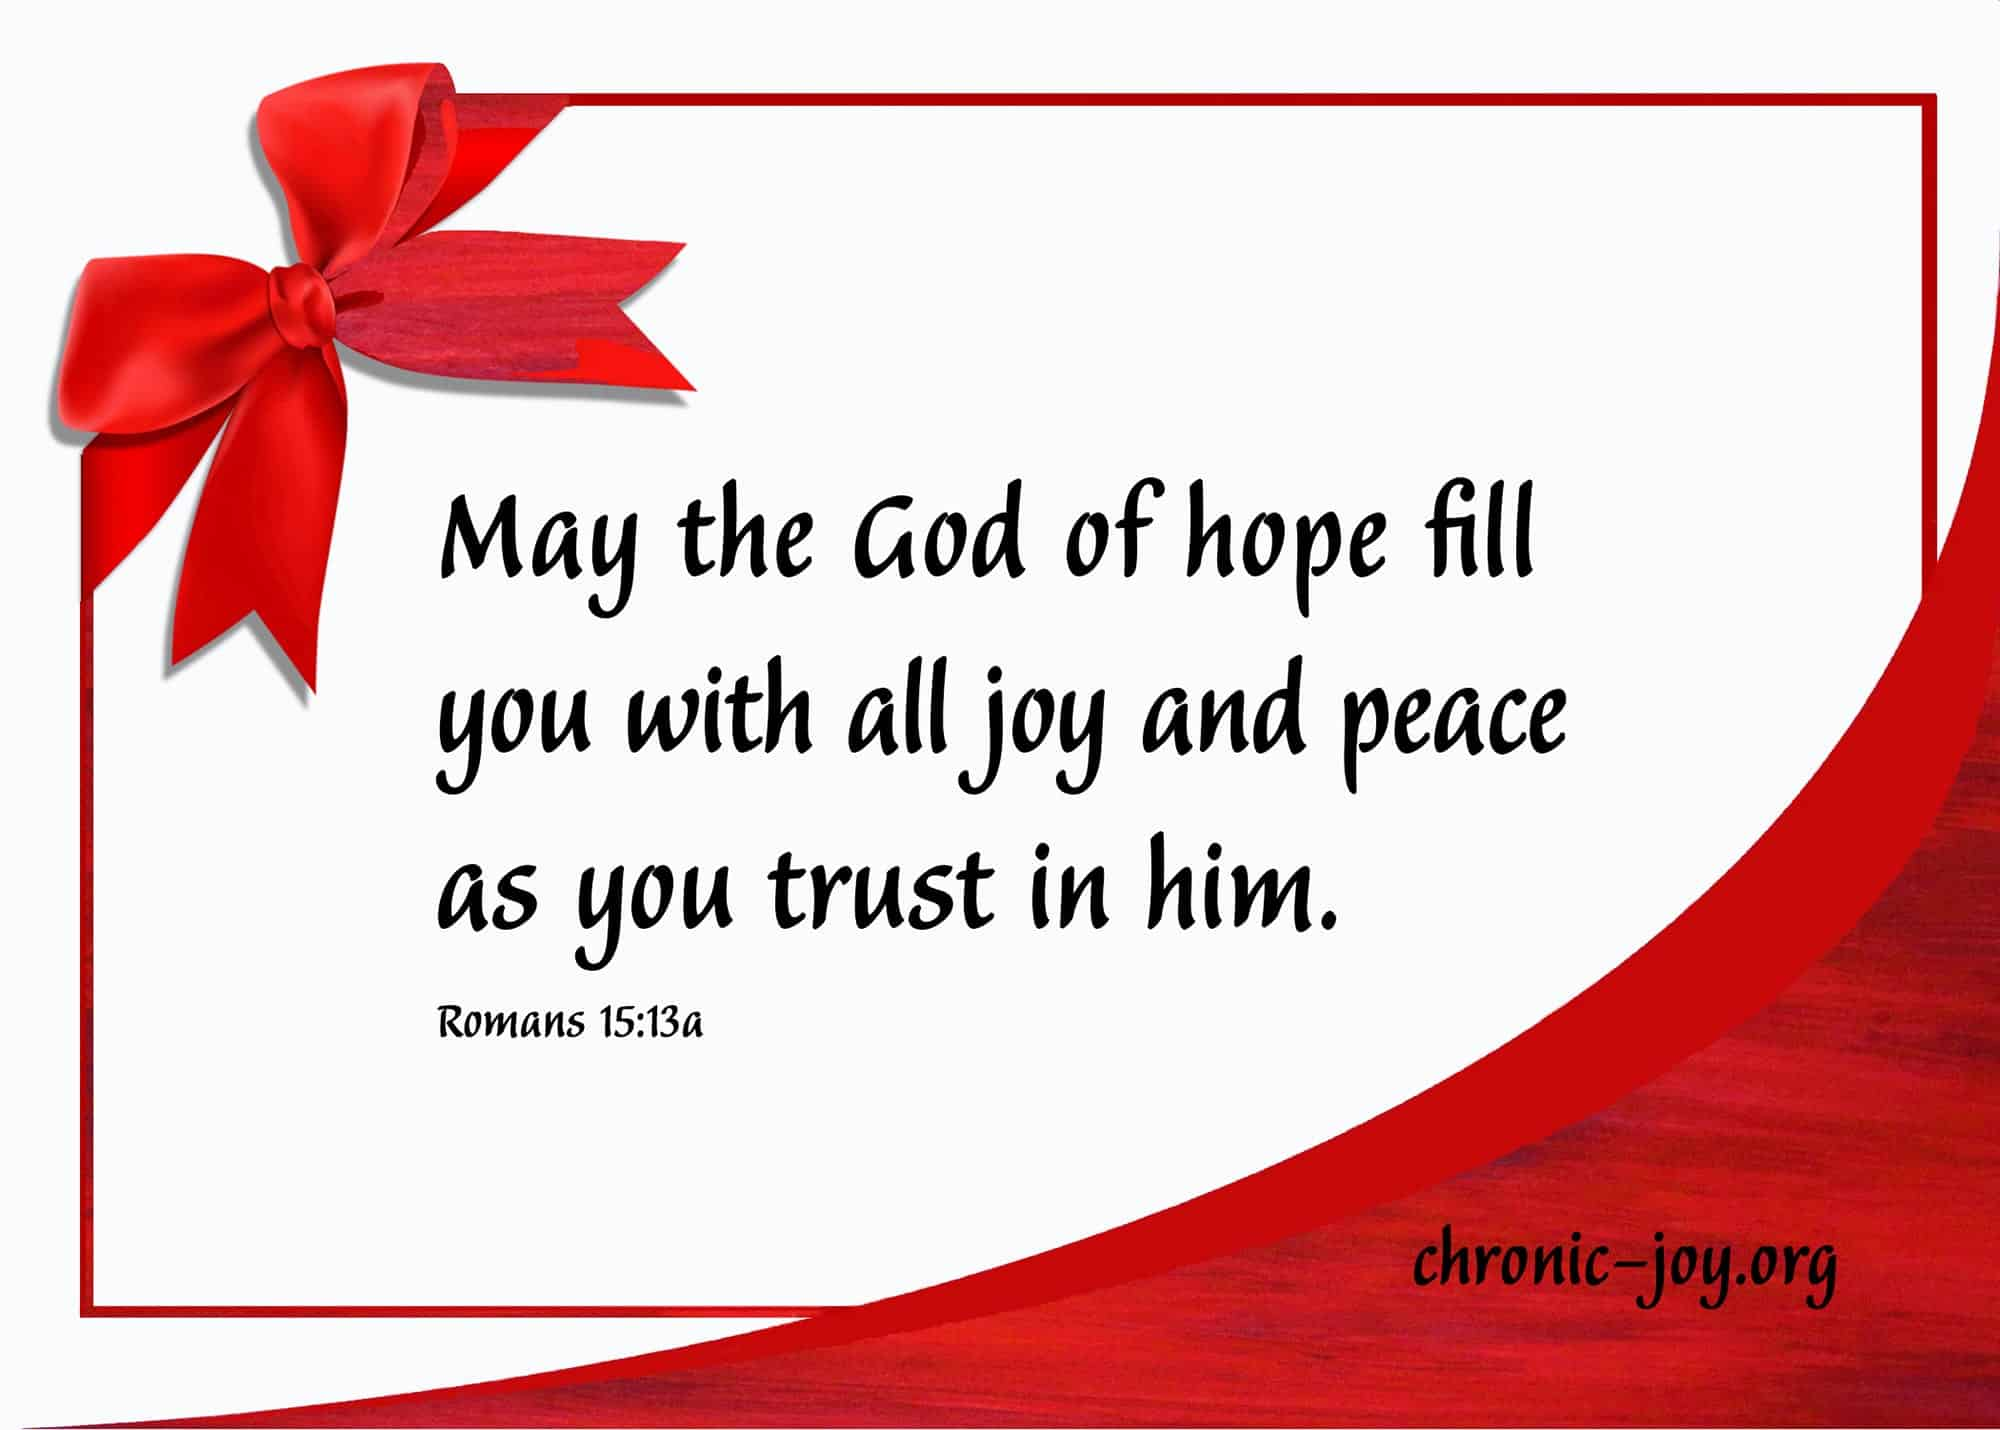 May the God of hope fill you with all joy and peace as you trust in him.